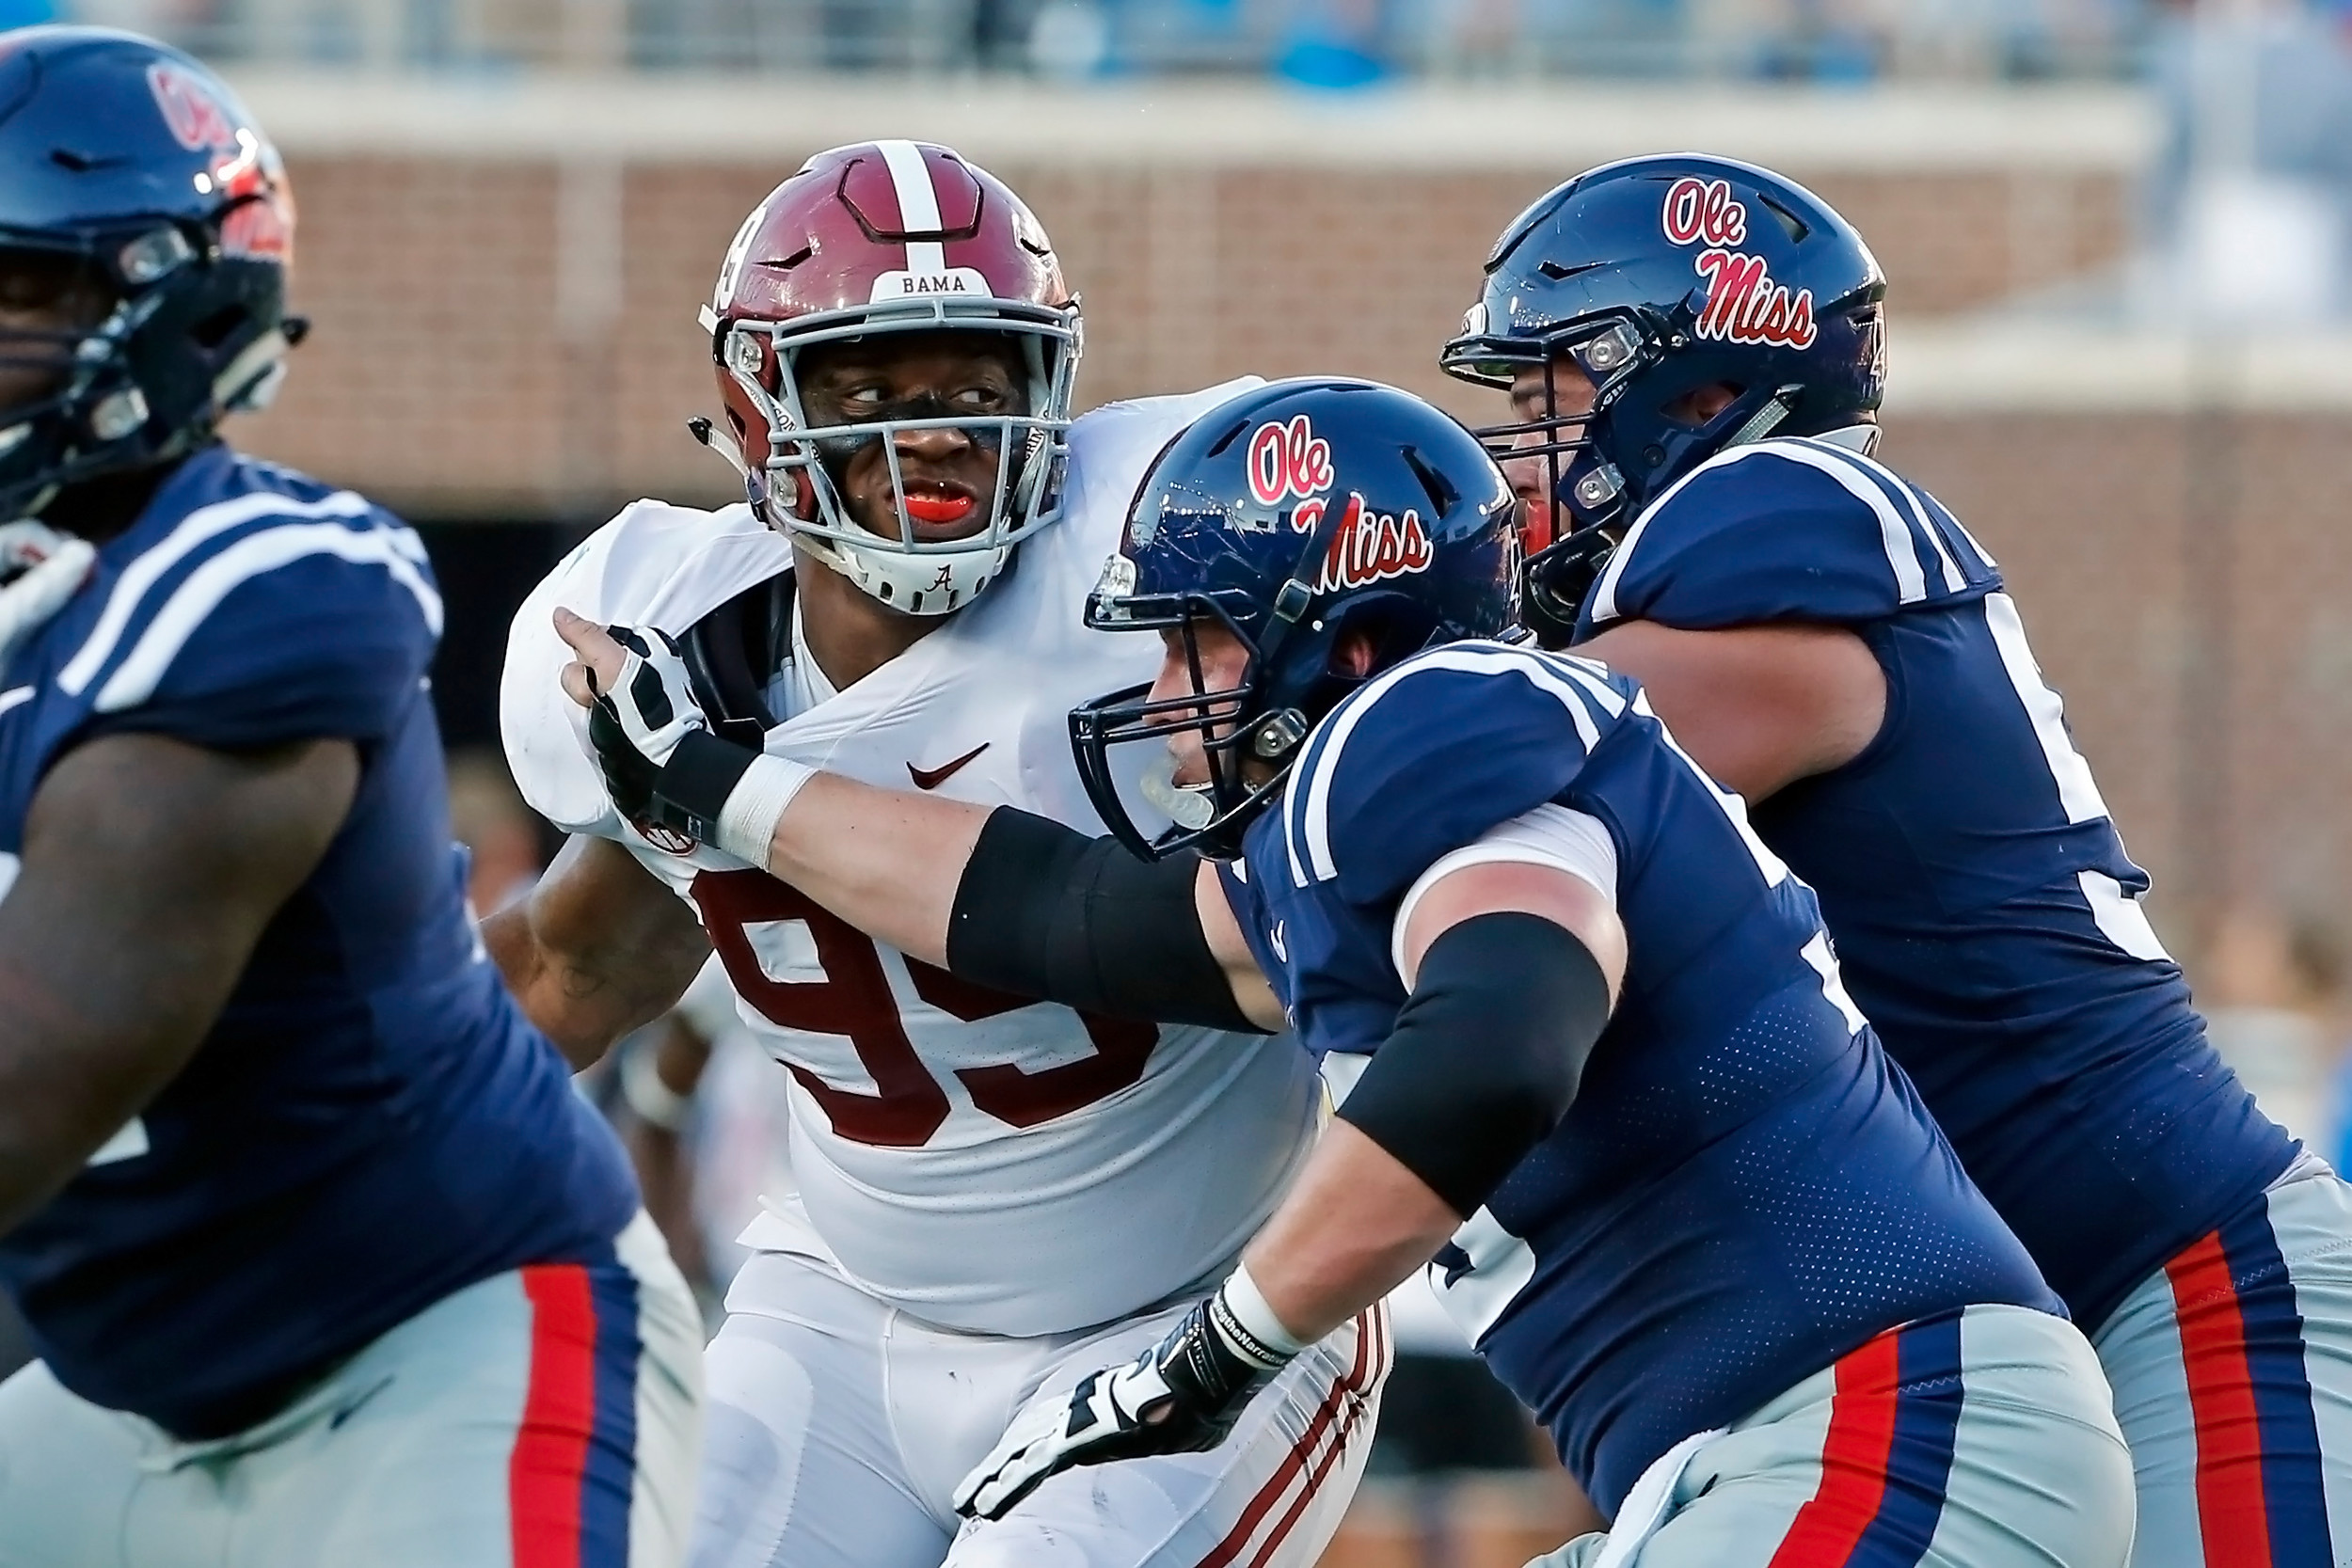 Alabama Crimson Tide defensive lineman Raekwon Davis (99) works against a double team during the game between the University of Alabama and Ole Miss at Vaught-Hemingway Stadium. Jason Clark / Daily Mountain Eagle